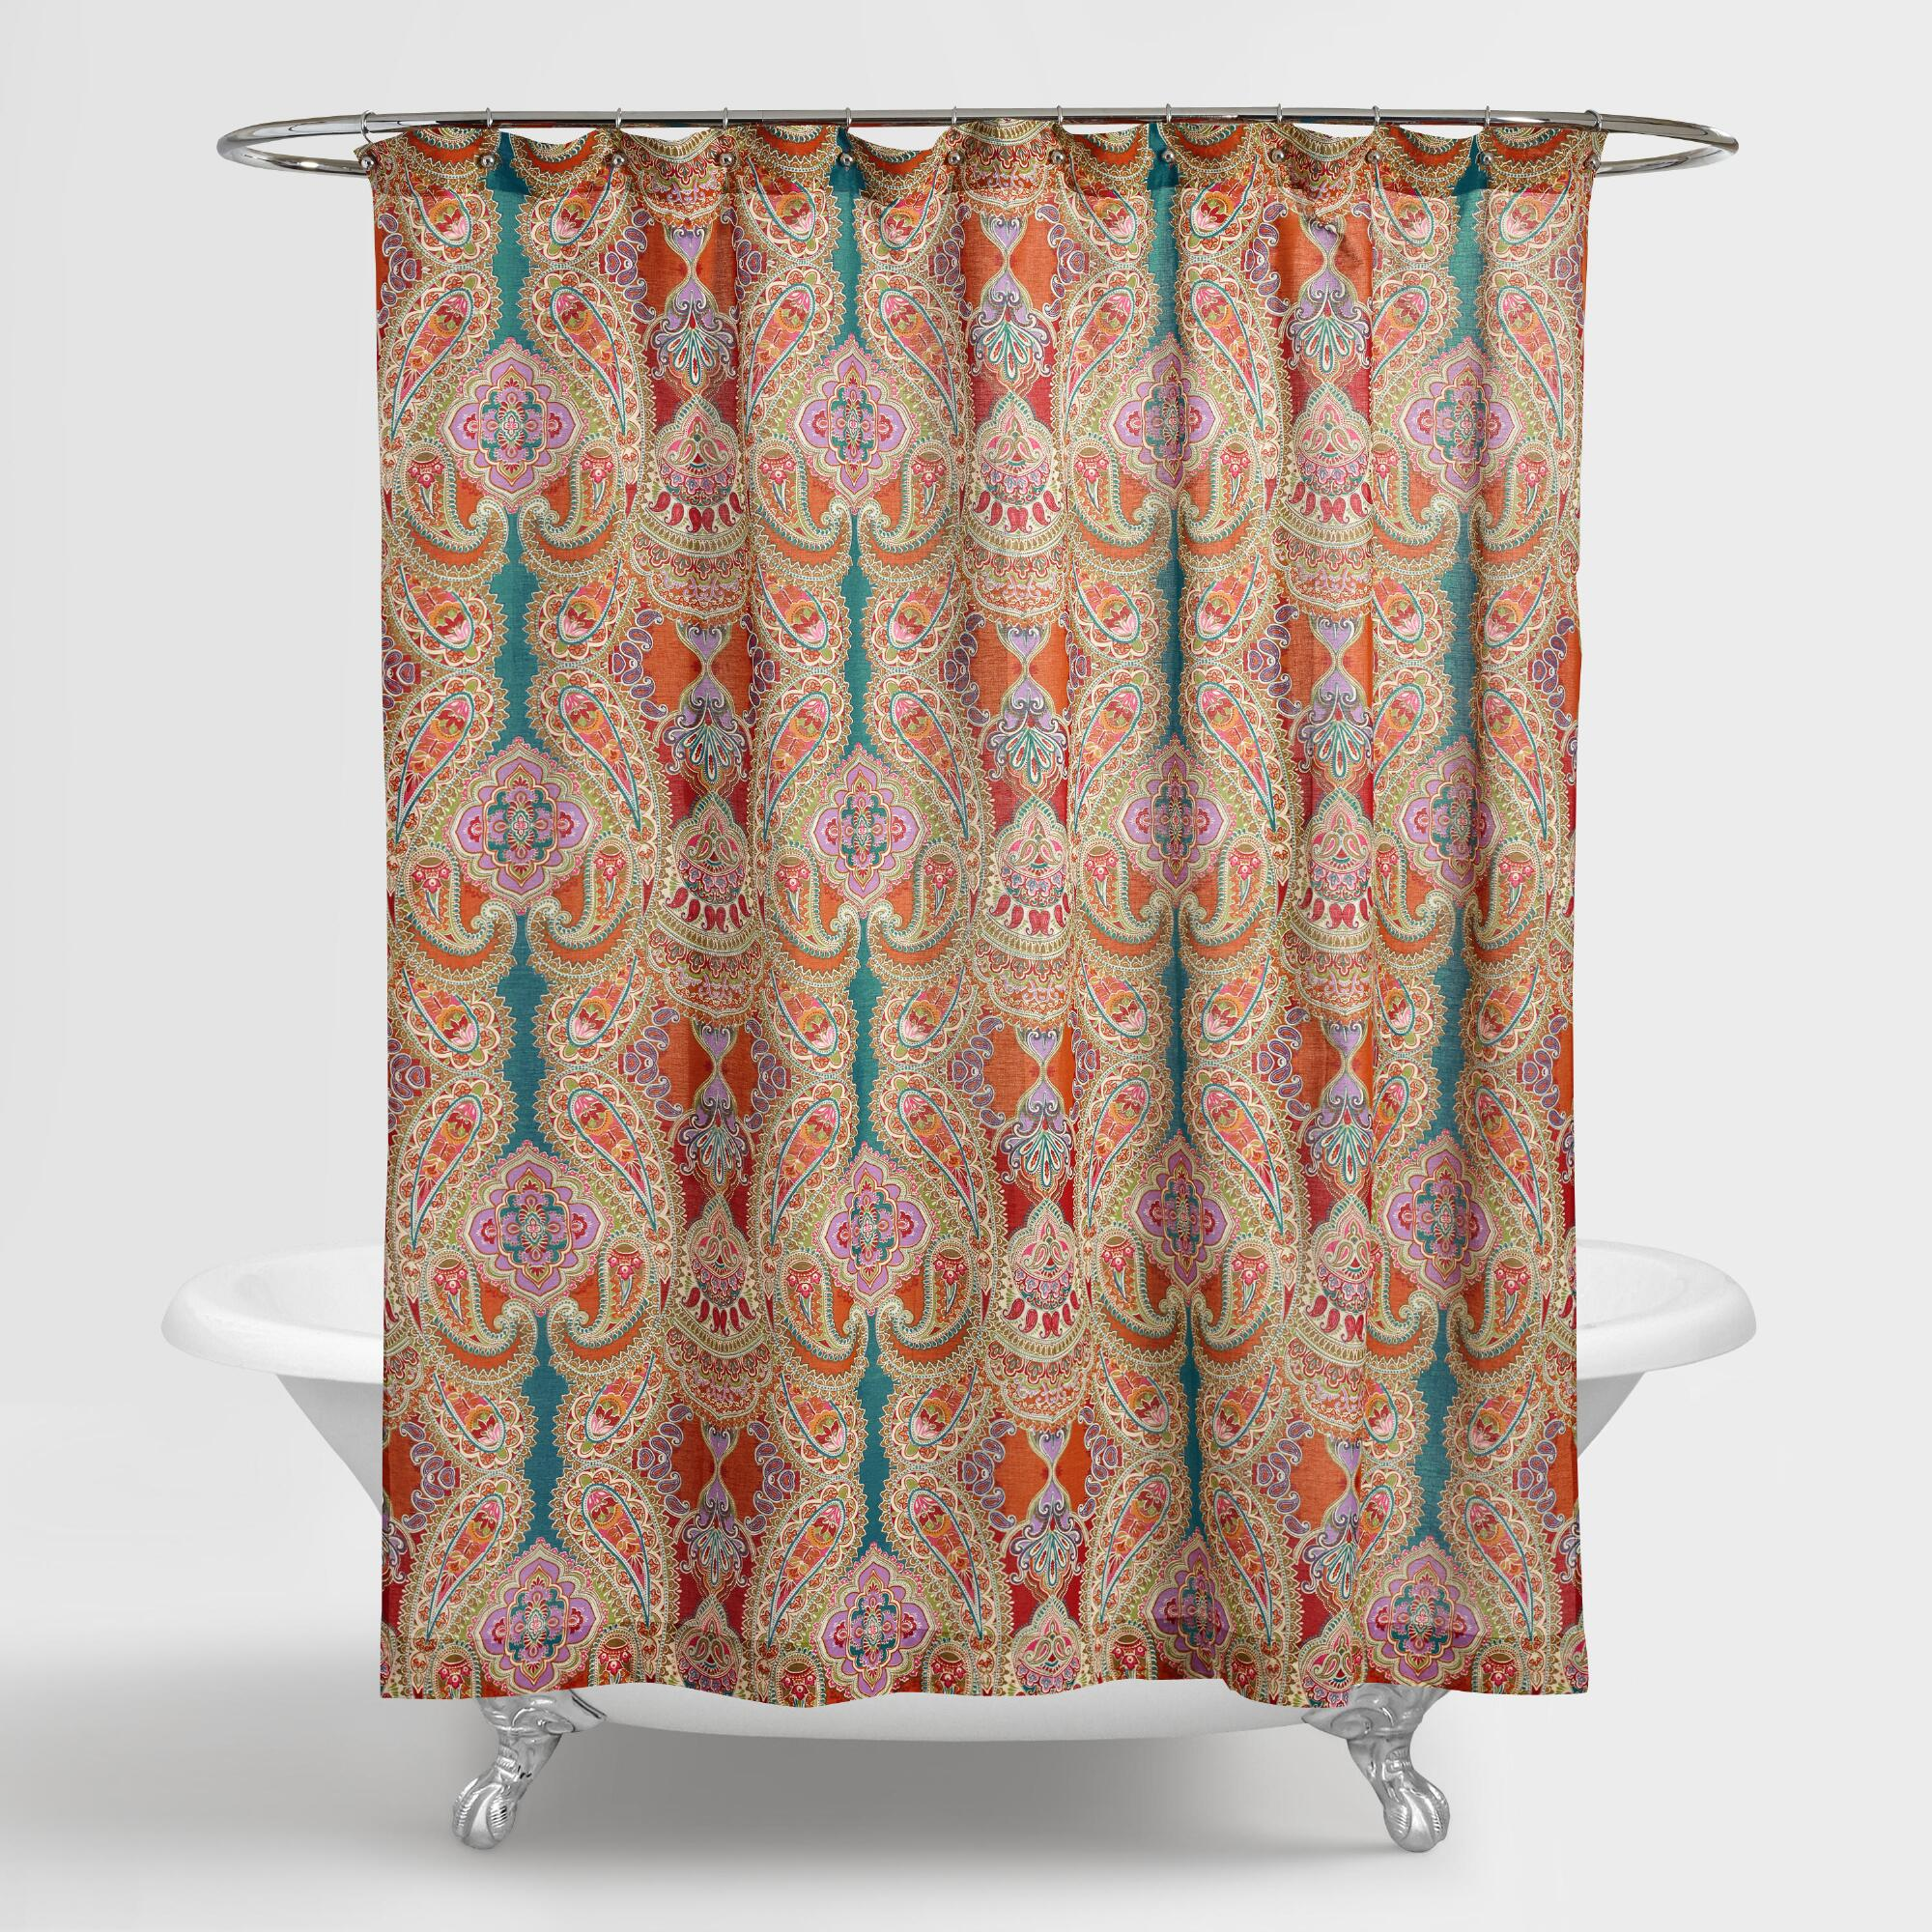 Flowered Shower Curtains | Floral Shower Curtain | Shower Curtain Bed Bath Beyond